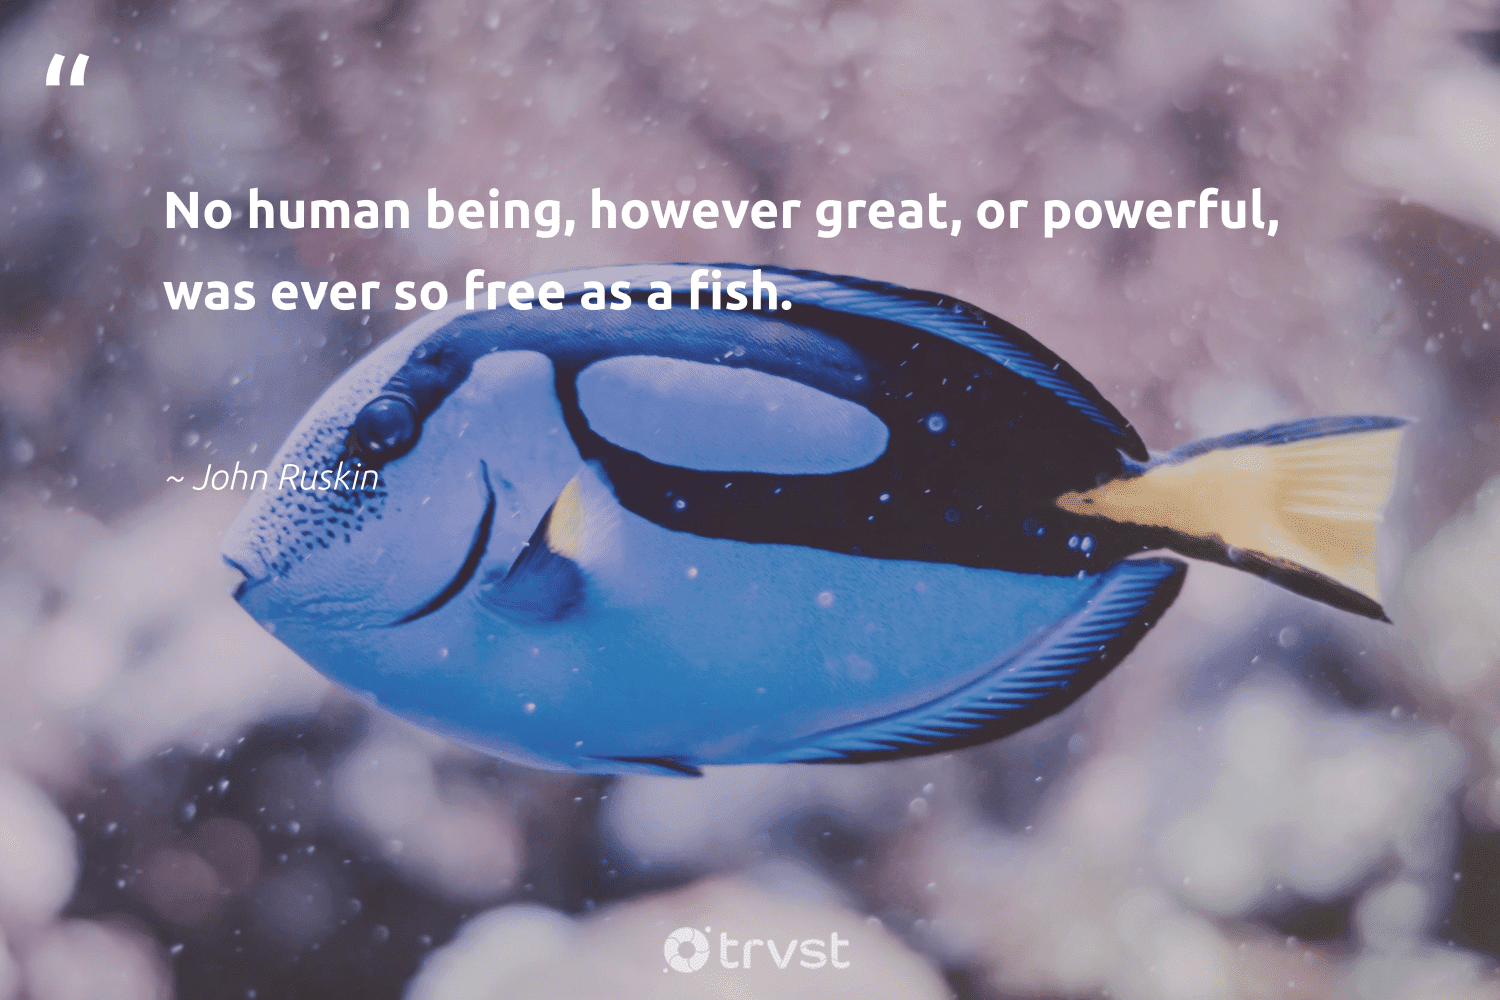 """""""No human being, however great, or powerful, was ever so free as a fish.""""  - John Ruskin #trvst #quotes #fish #oceanconservation #collectiveaction #oceanlove #dosomething #intheocean #changetheworld #nature #planetearthfirst #marinelife"""